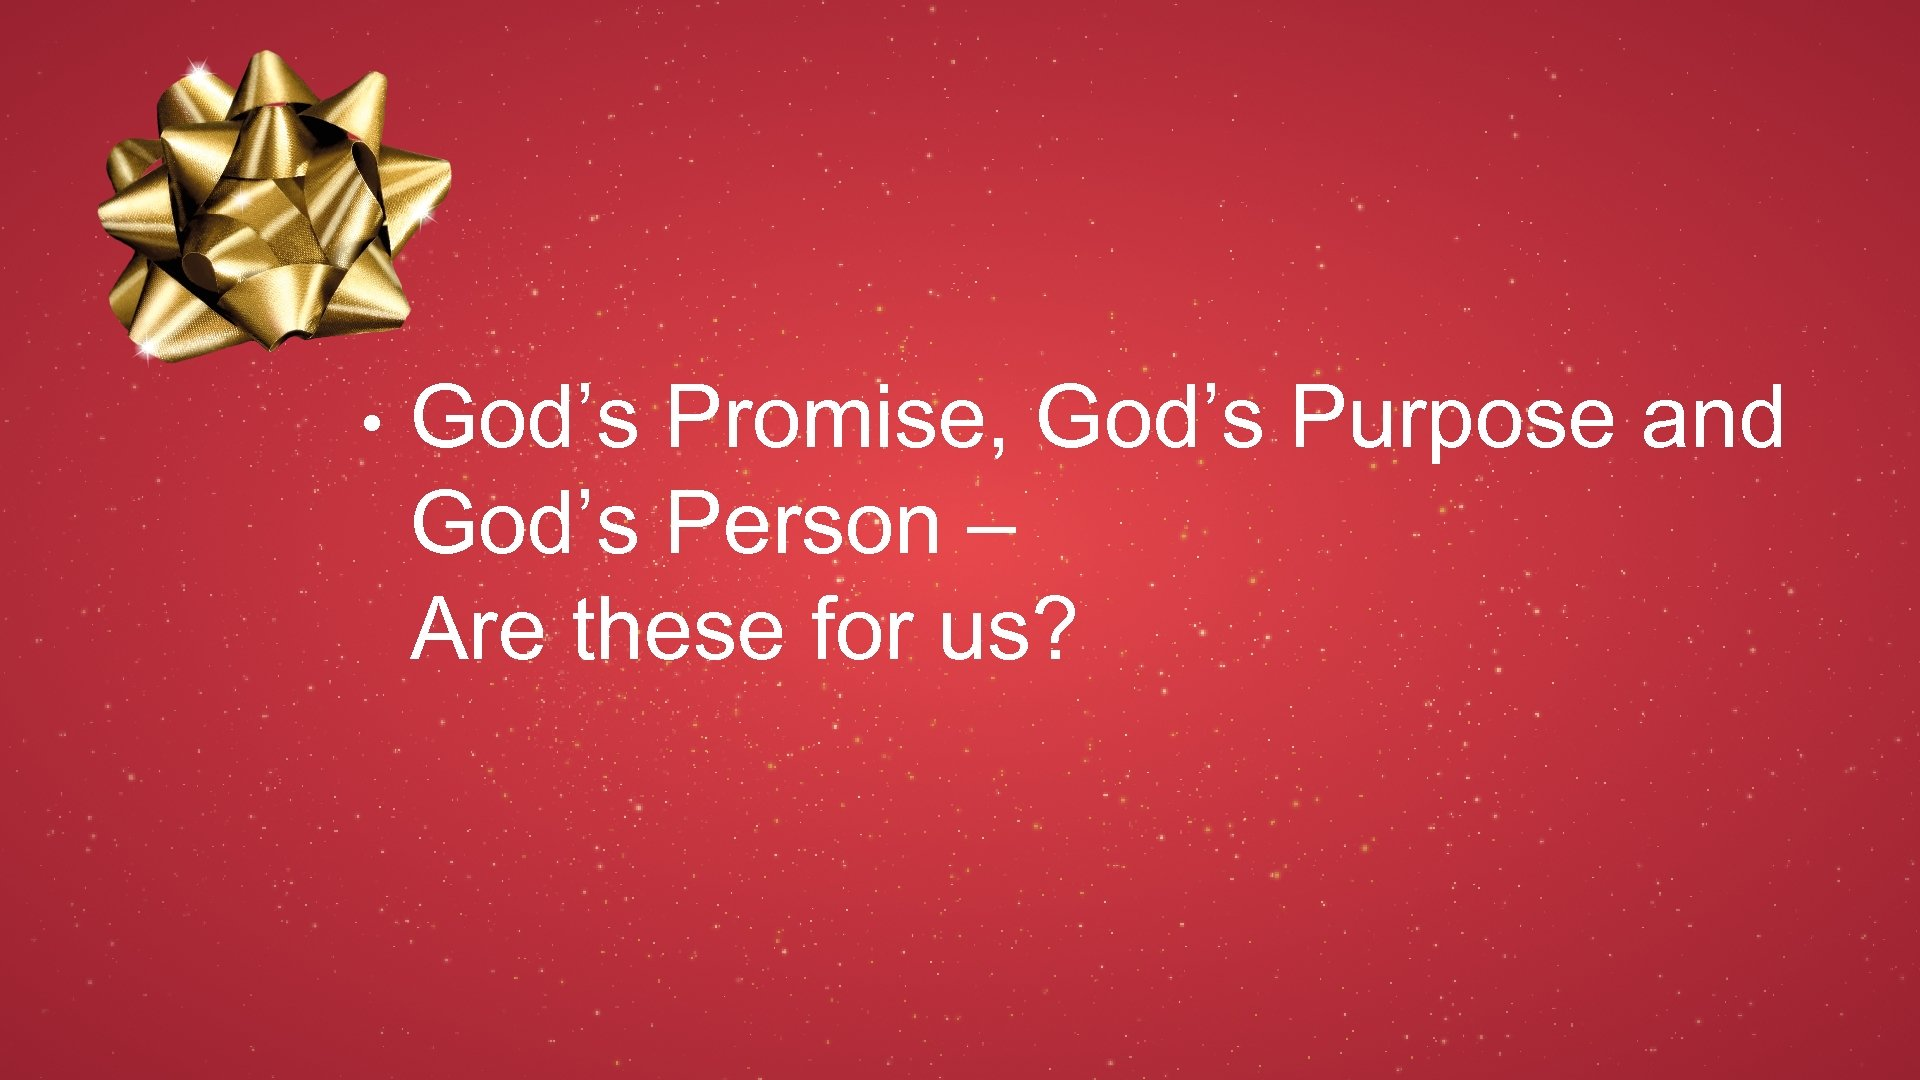 • God's Promise, God's Purpose and God's Person – Are these for us?